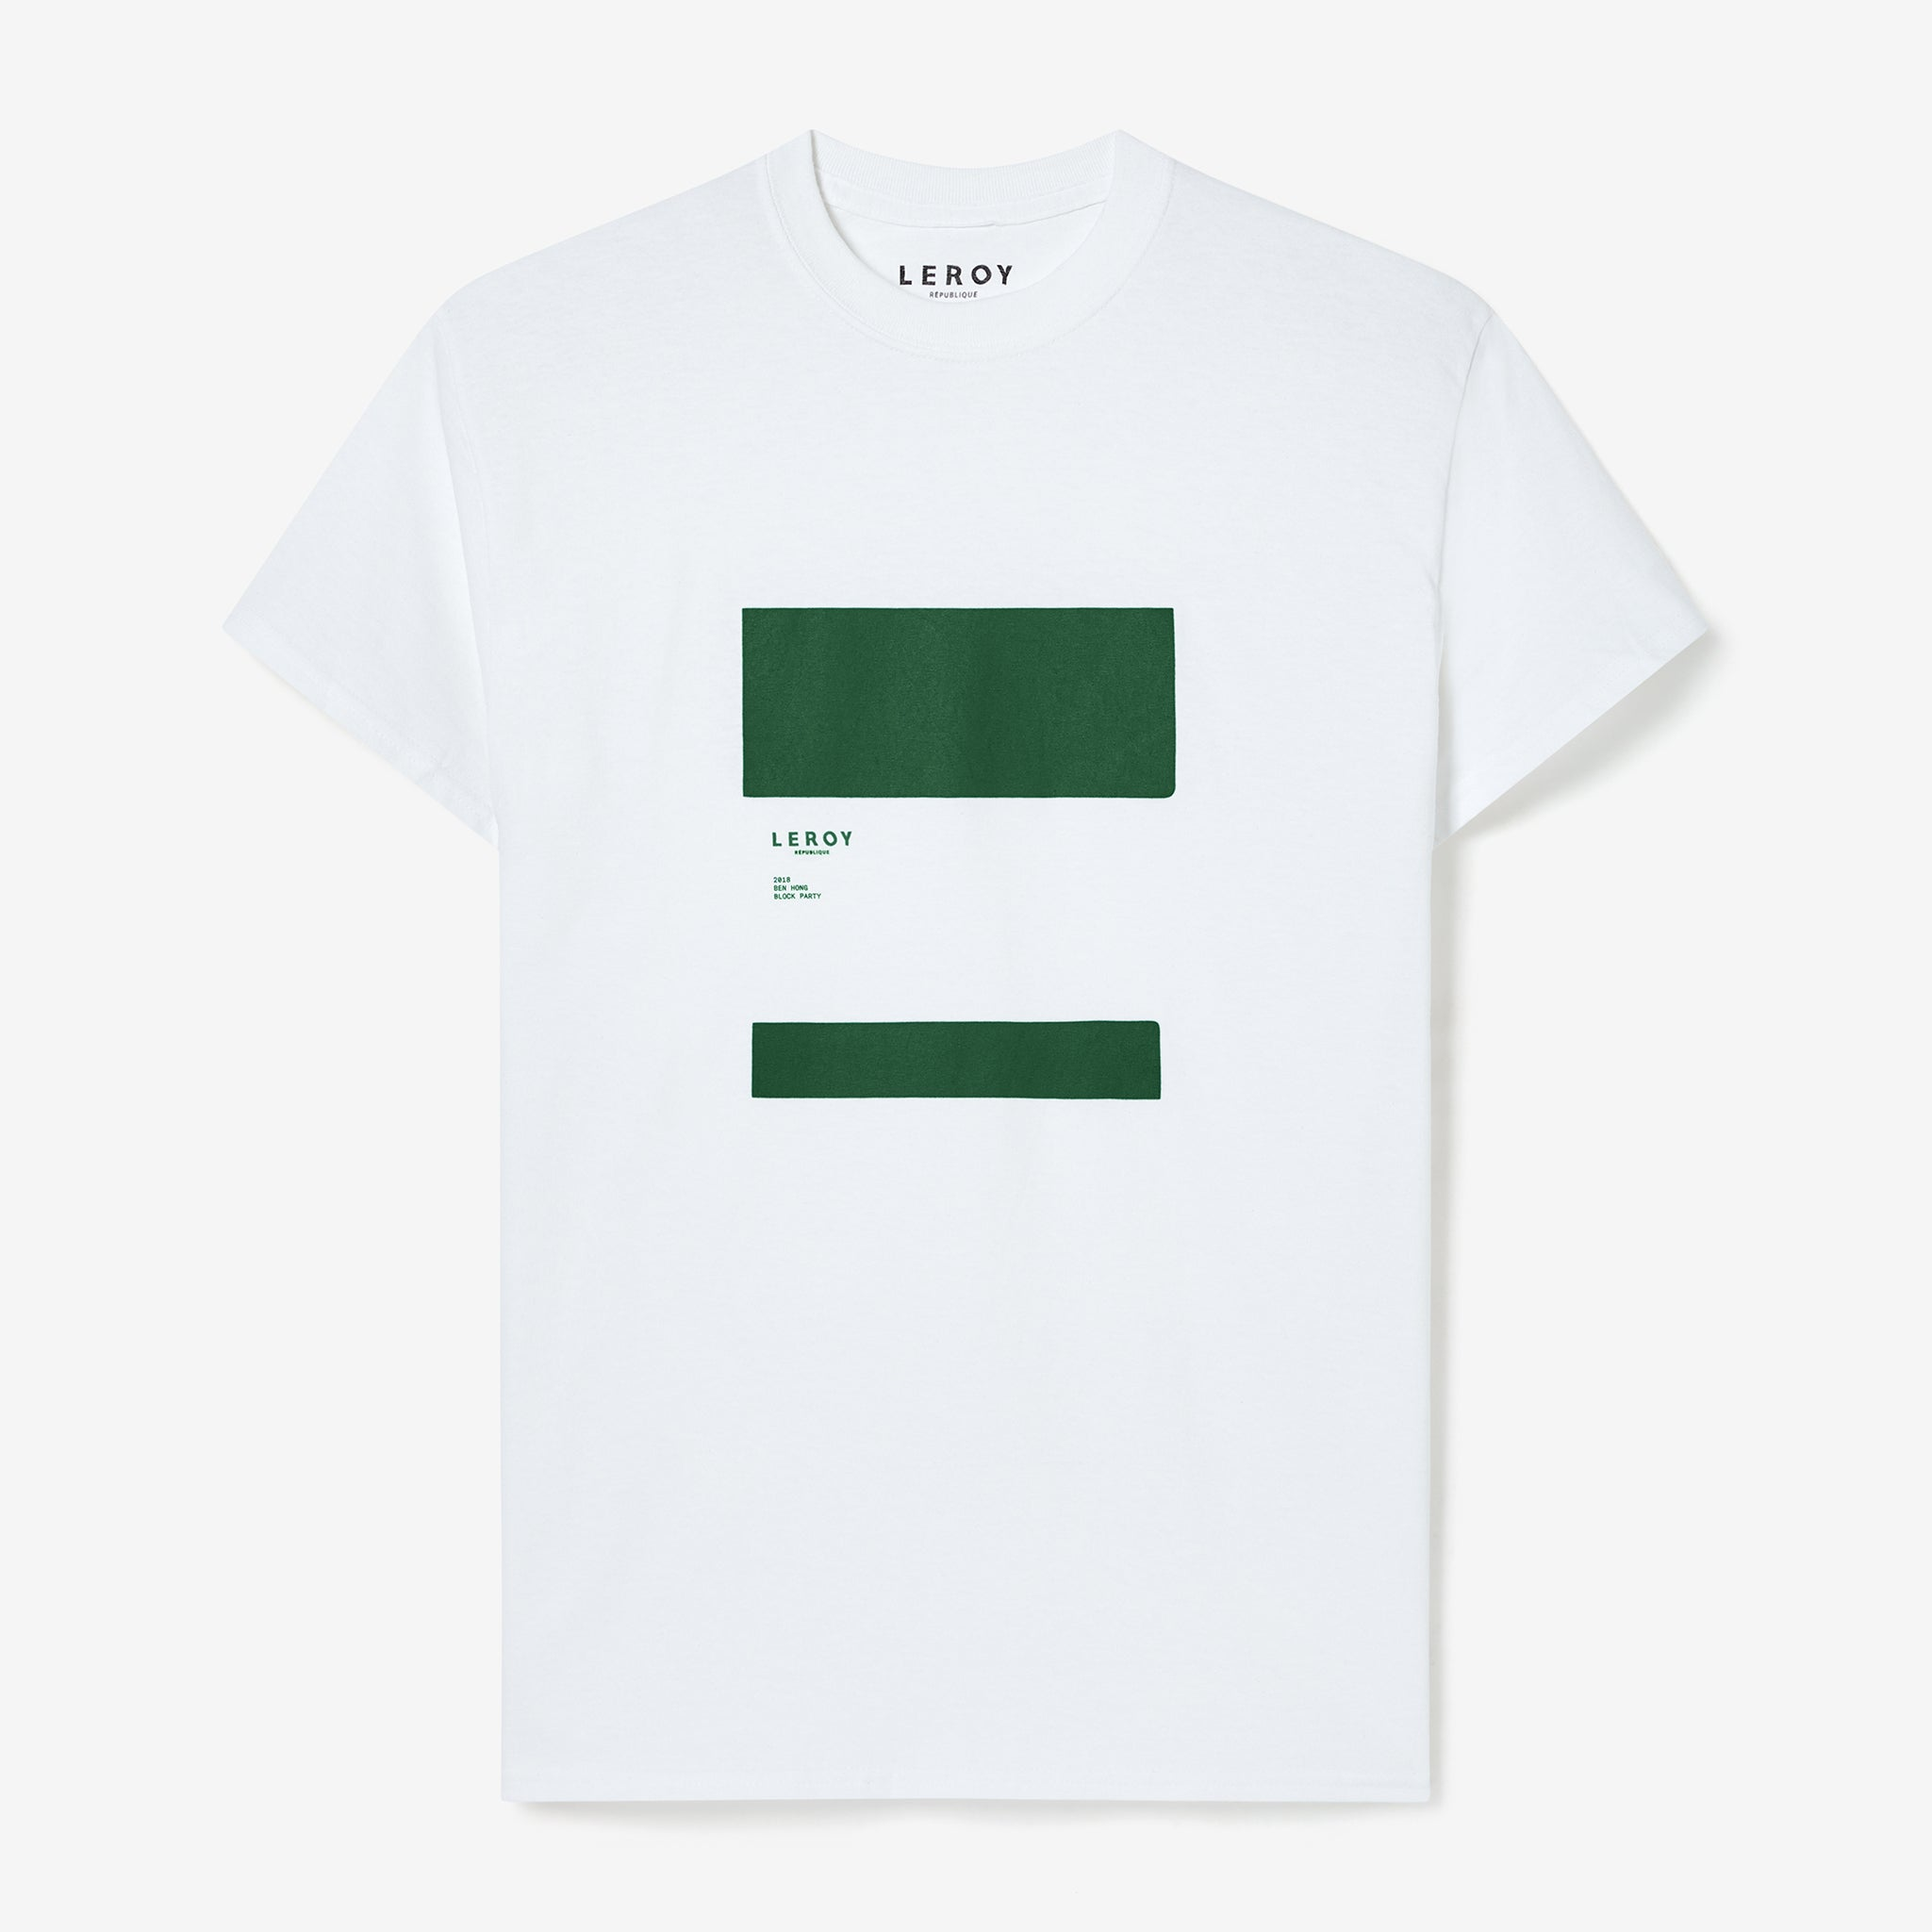 Ledge green T-shirt